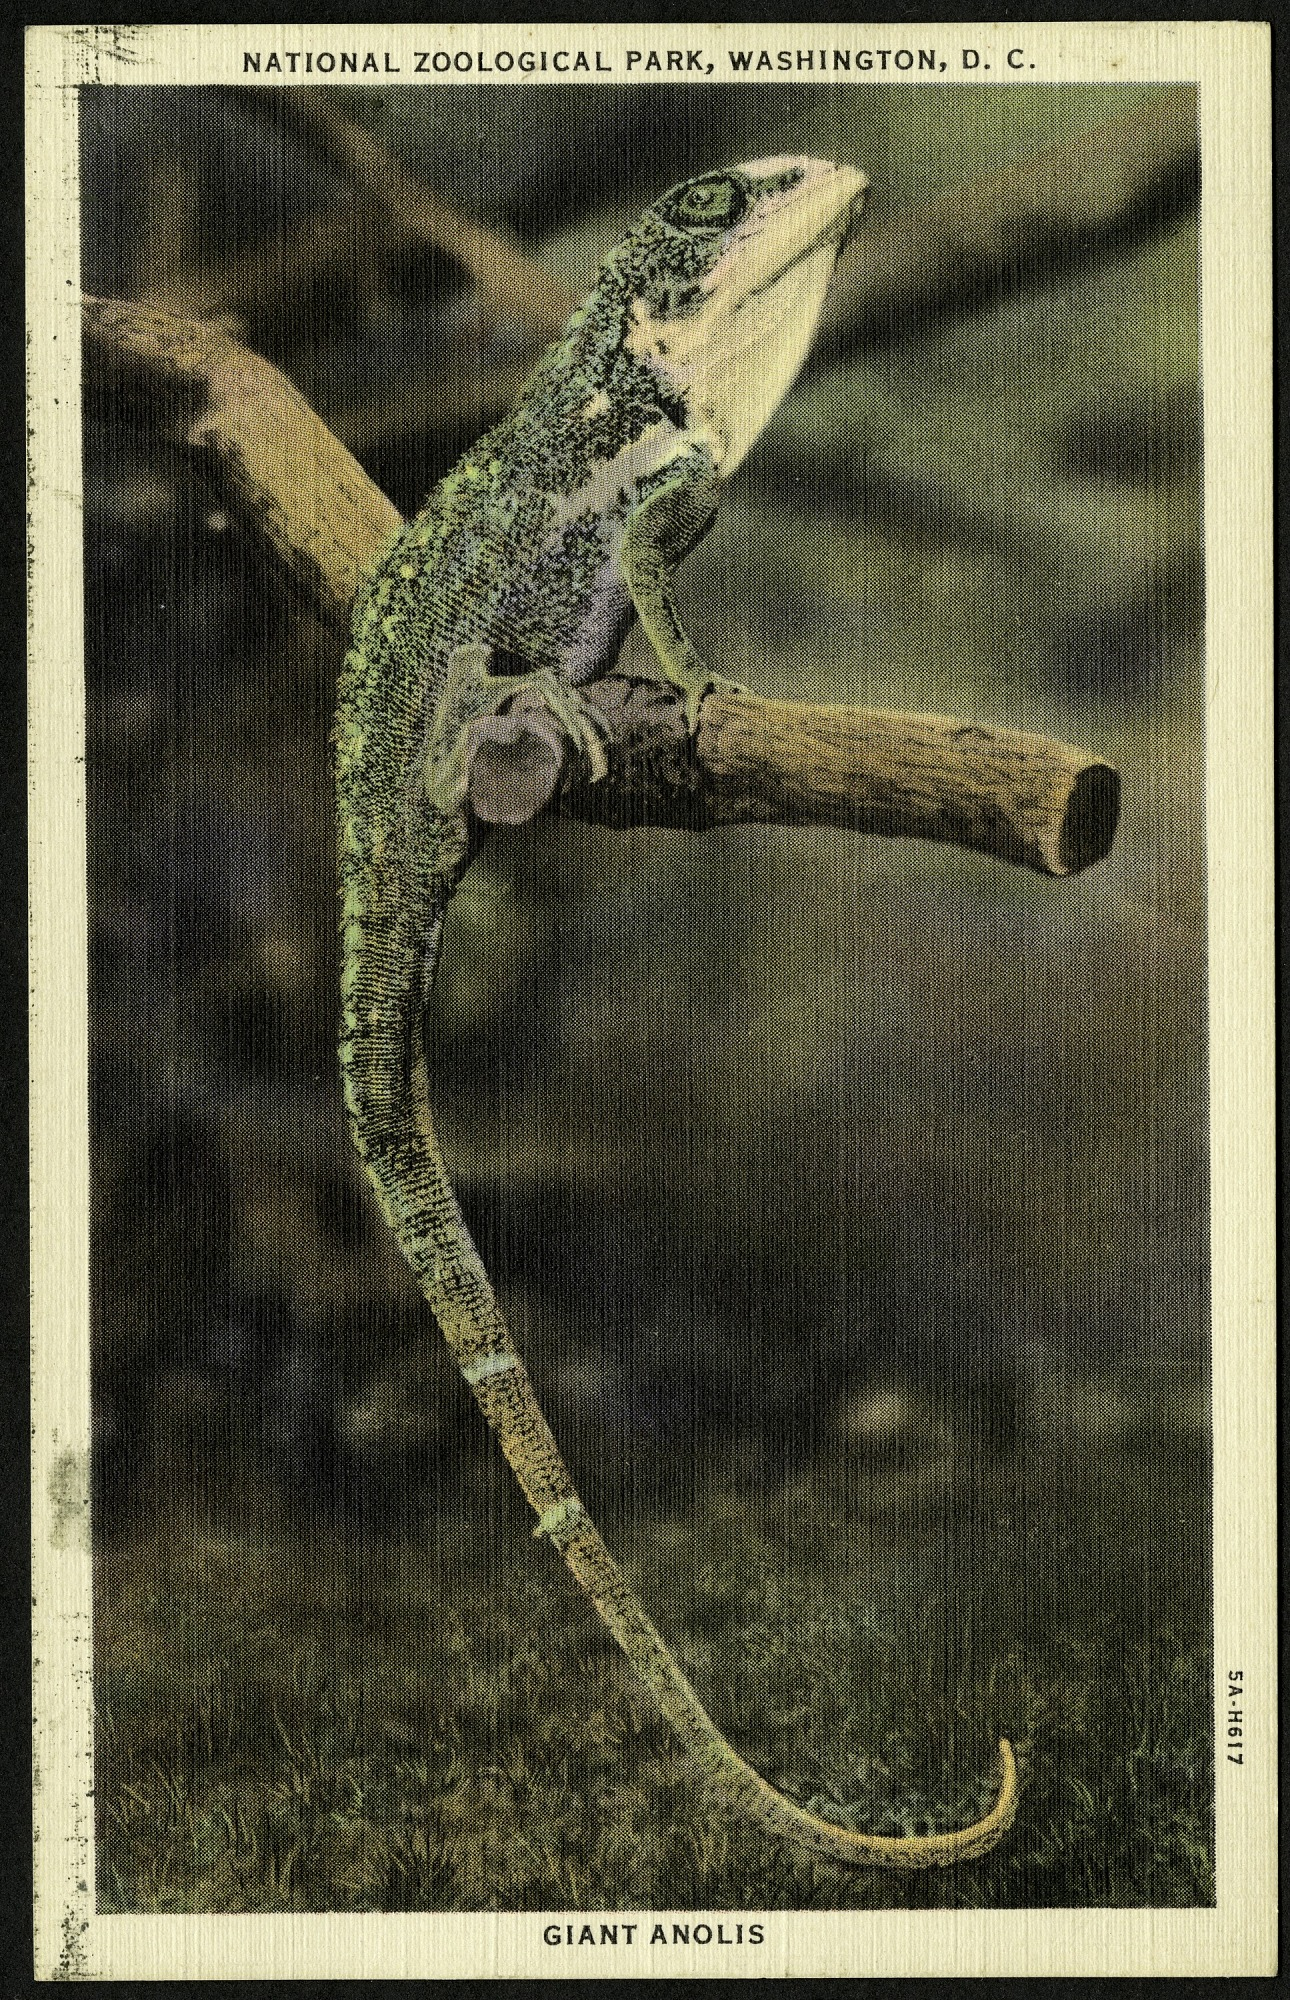 Blank Postcard of a Giant Anolis at the Zoo